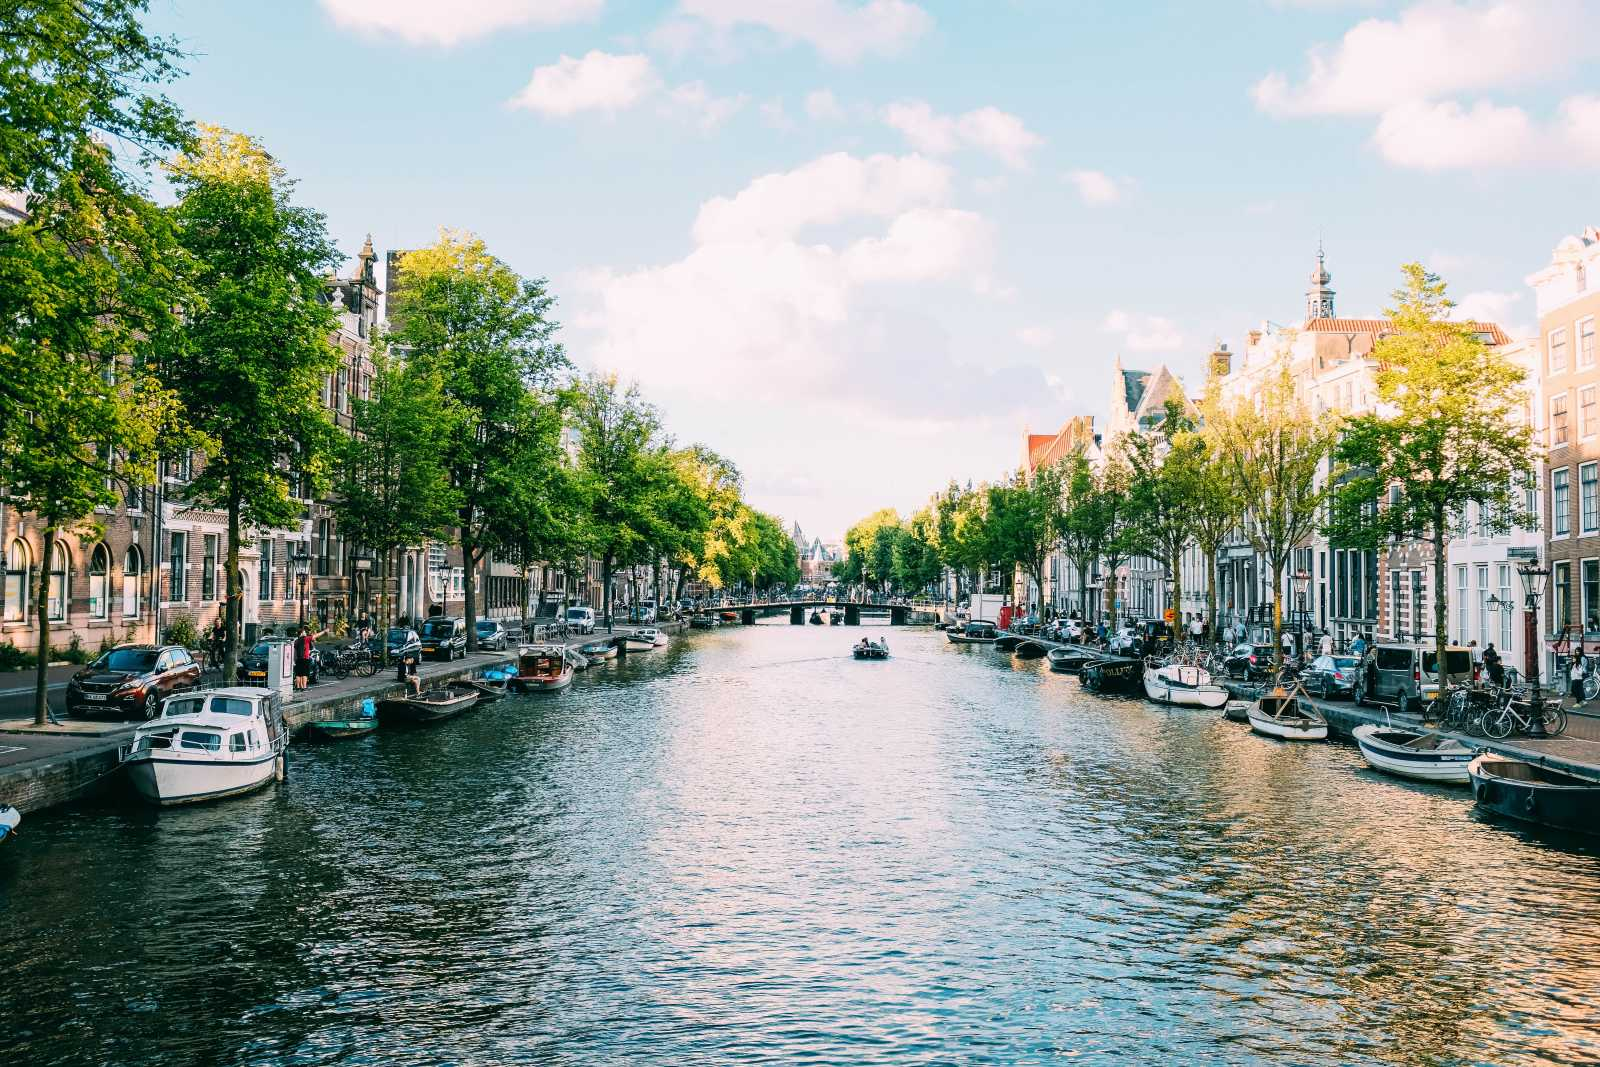 View of a canal in Amsterdam - to experience on an Amsterdam holiday